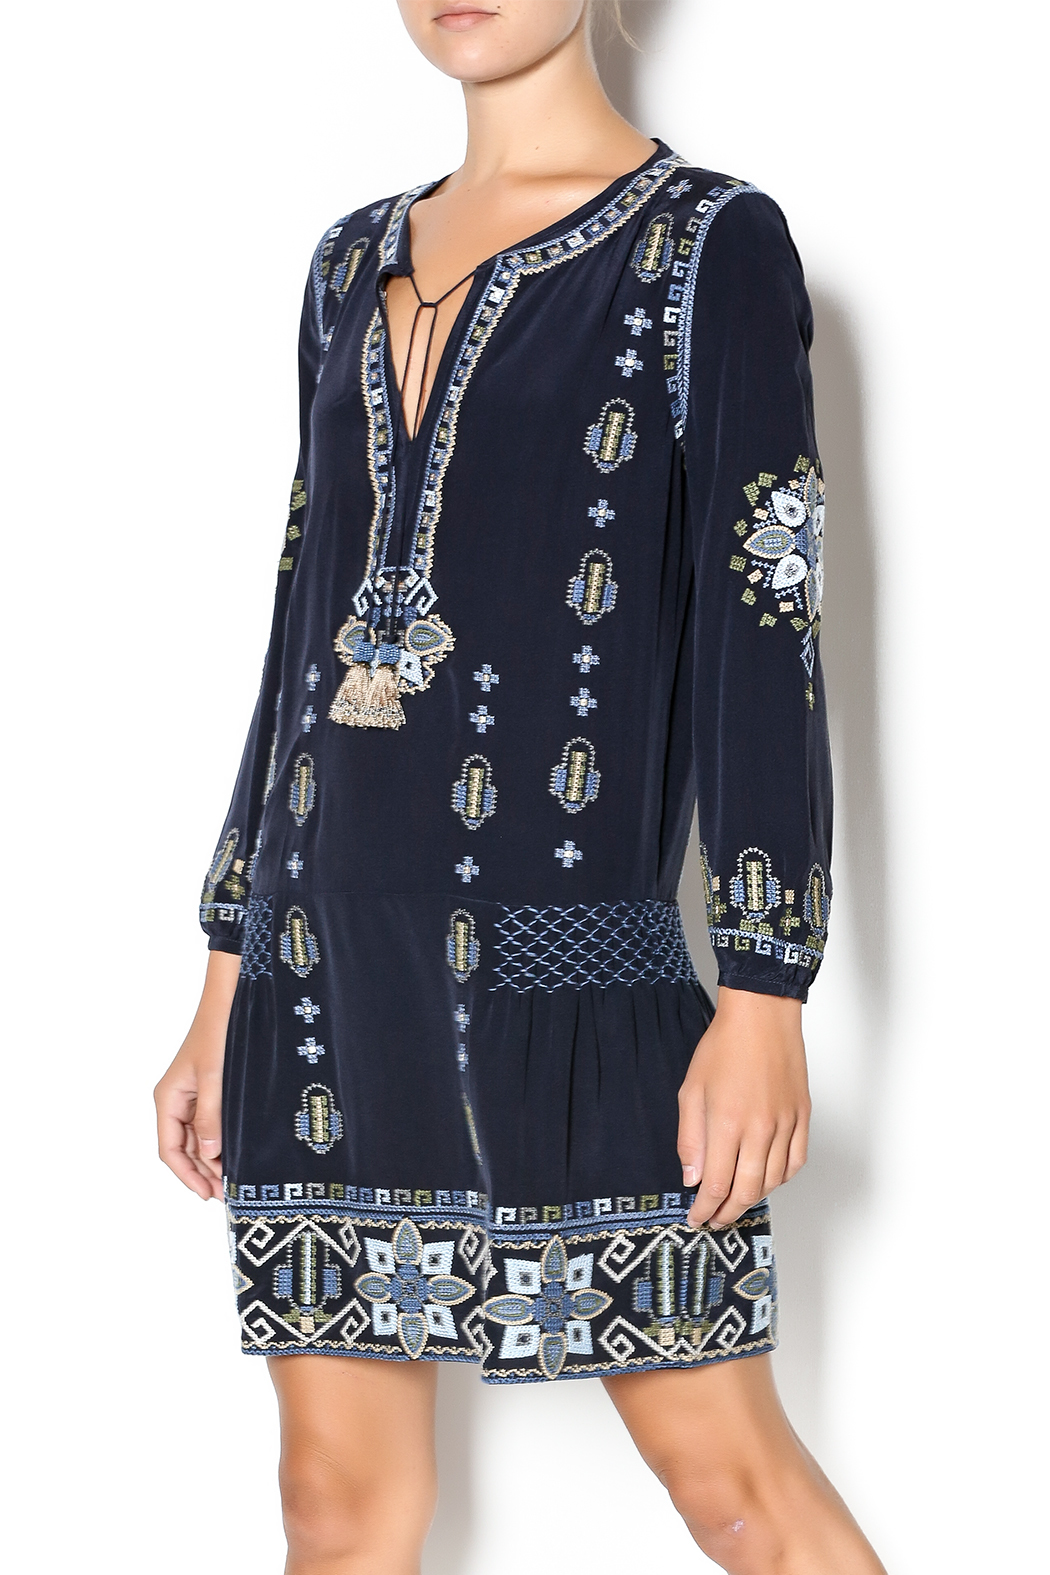 Calypso St Barth Nona Embroidered Dress From South